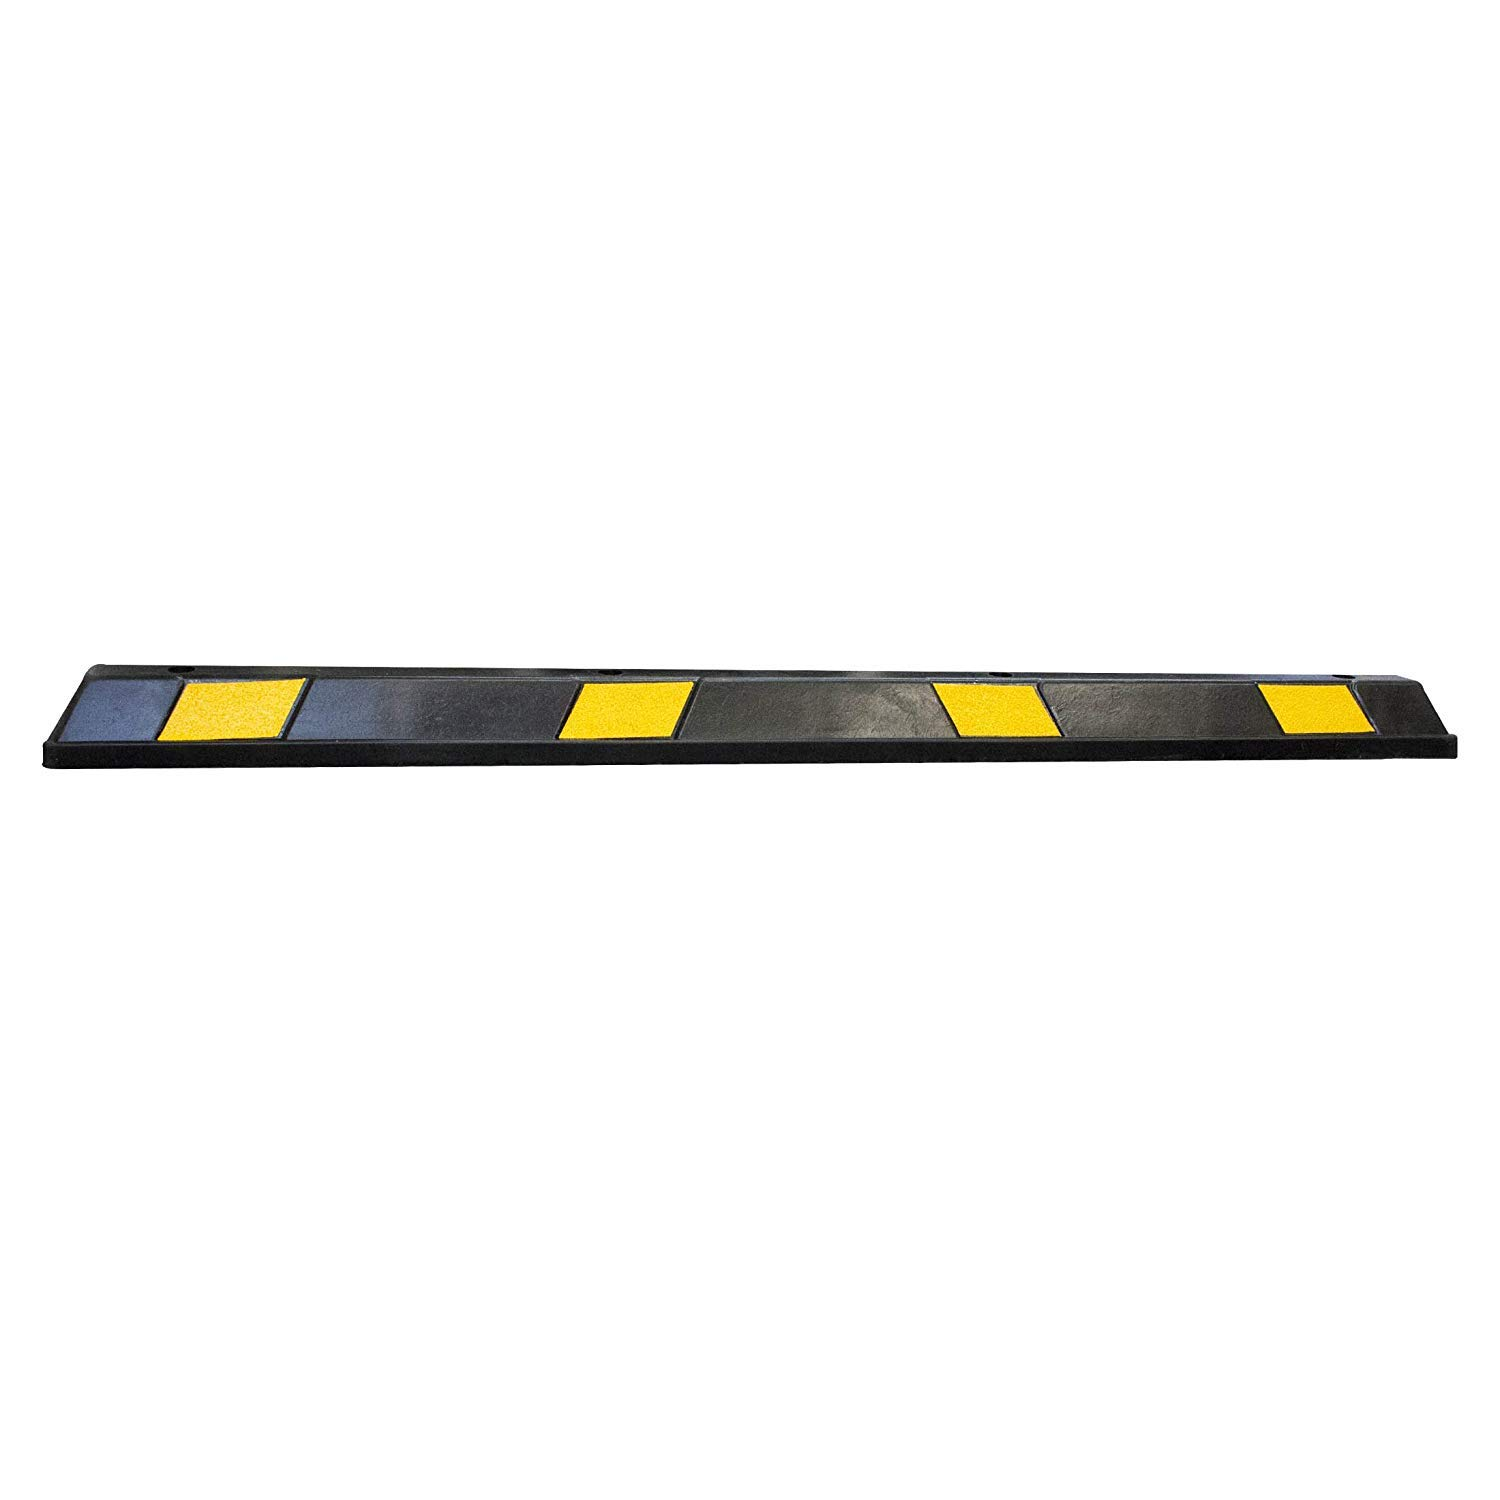 RK-BP72 Heavy Duty Rubber Parking Curb, Parking Block, 72 -inch for Car, Truck, RV and Trailer Stop Aid with 4-Piece Anchor Kit by RK (Image #2)